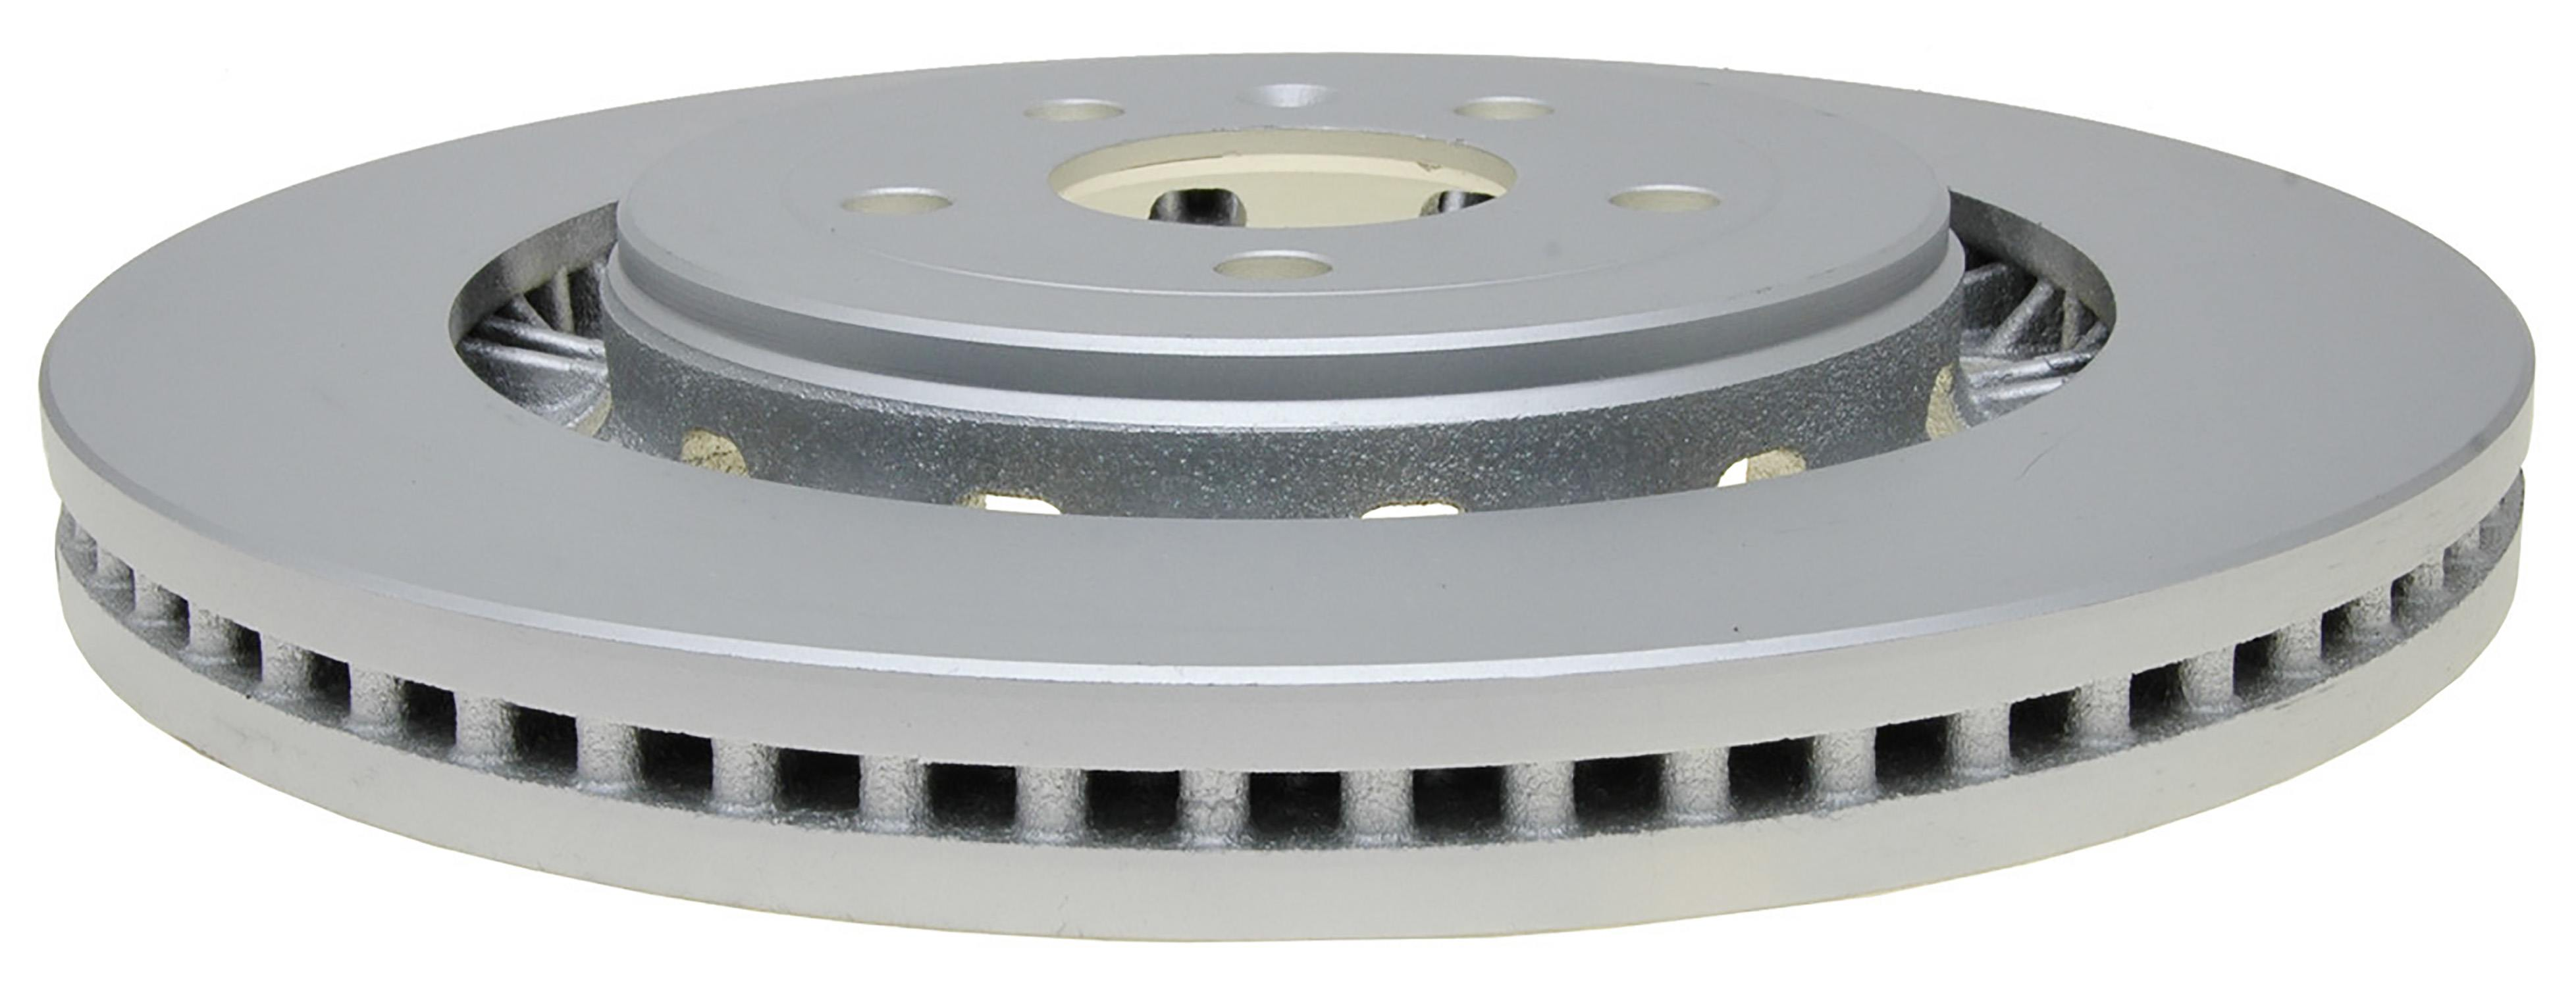 ACDELCO SPECIALTY - Police Disc Brake Rotor - DCE 18A2946PV